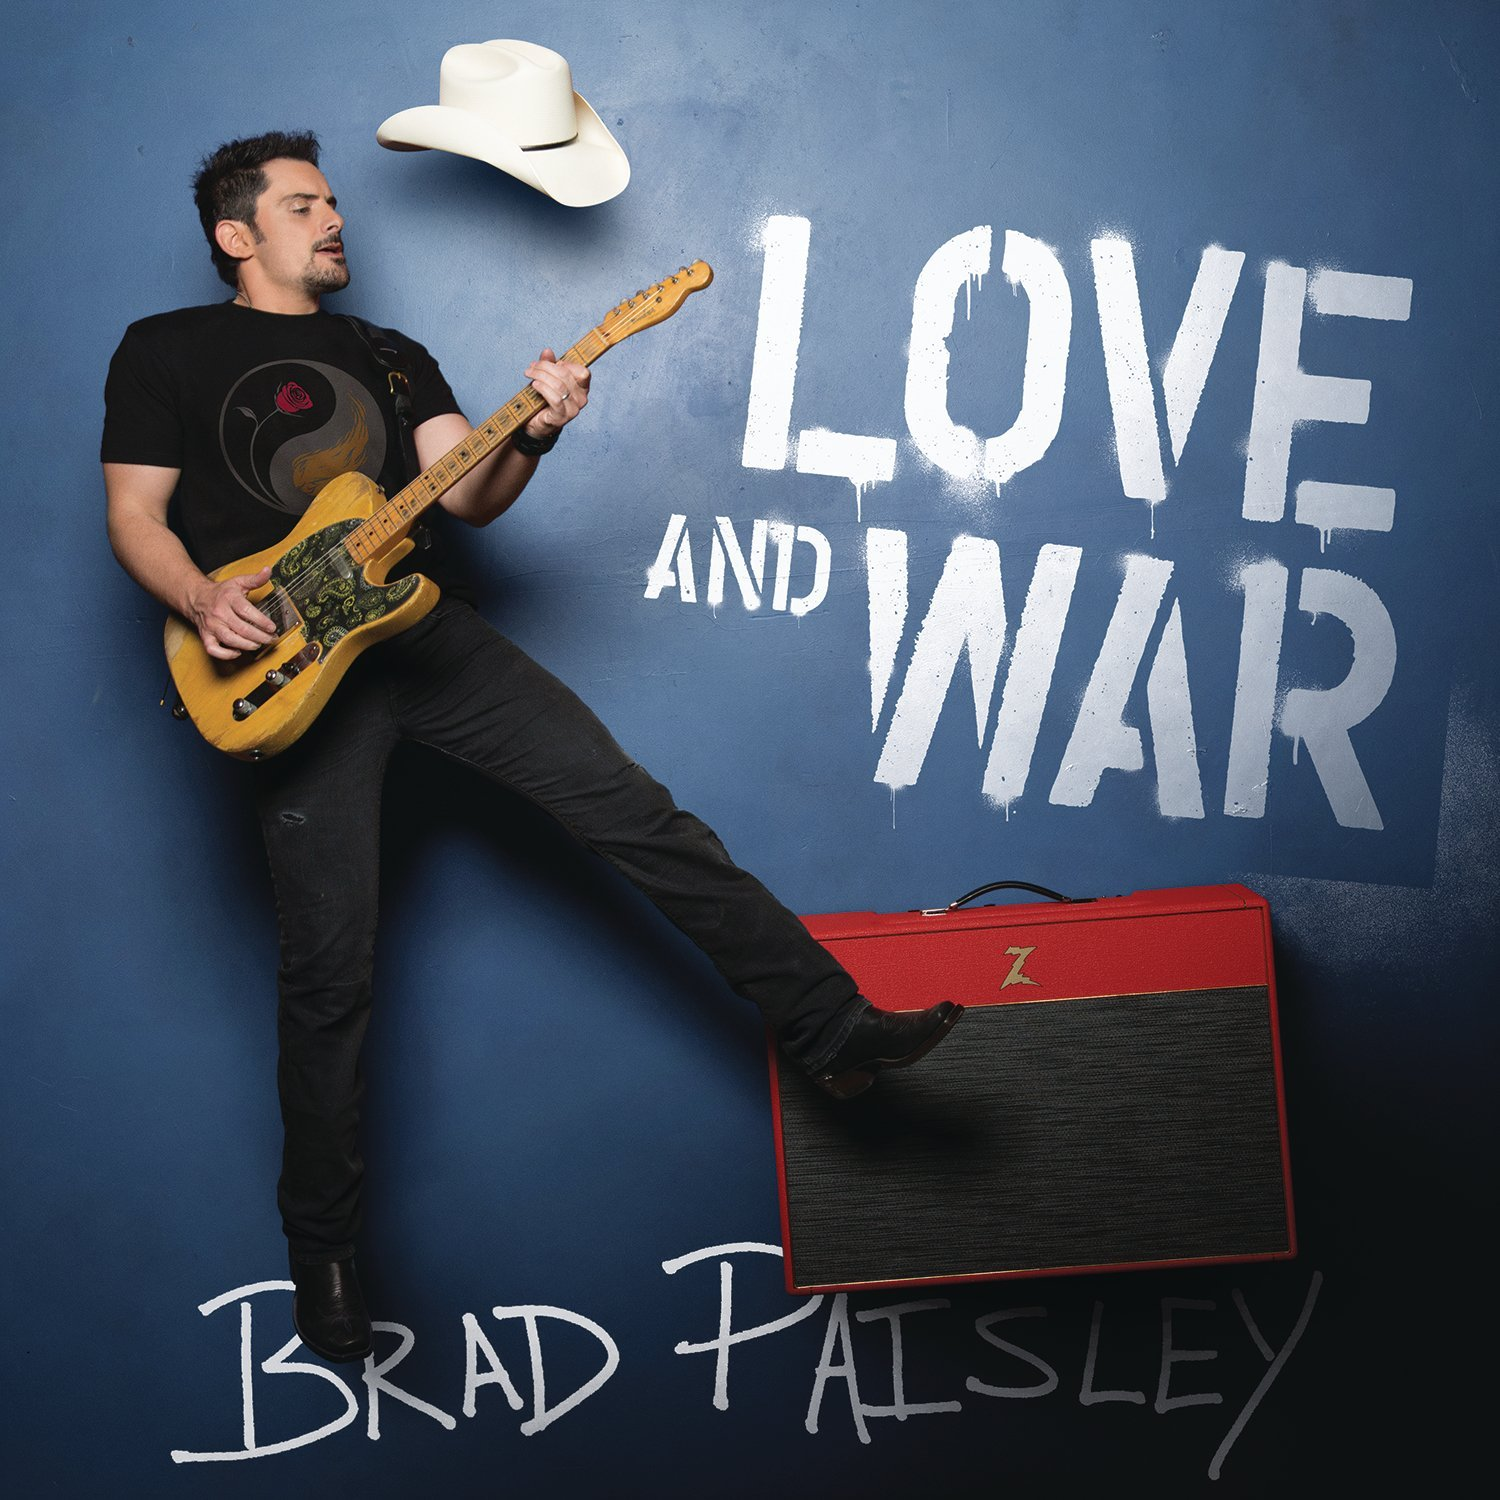 Incubus Songs List Great music shopping list: brad paisley leads the charge - the musical hype